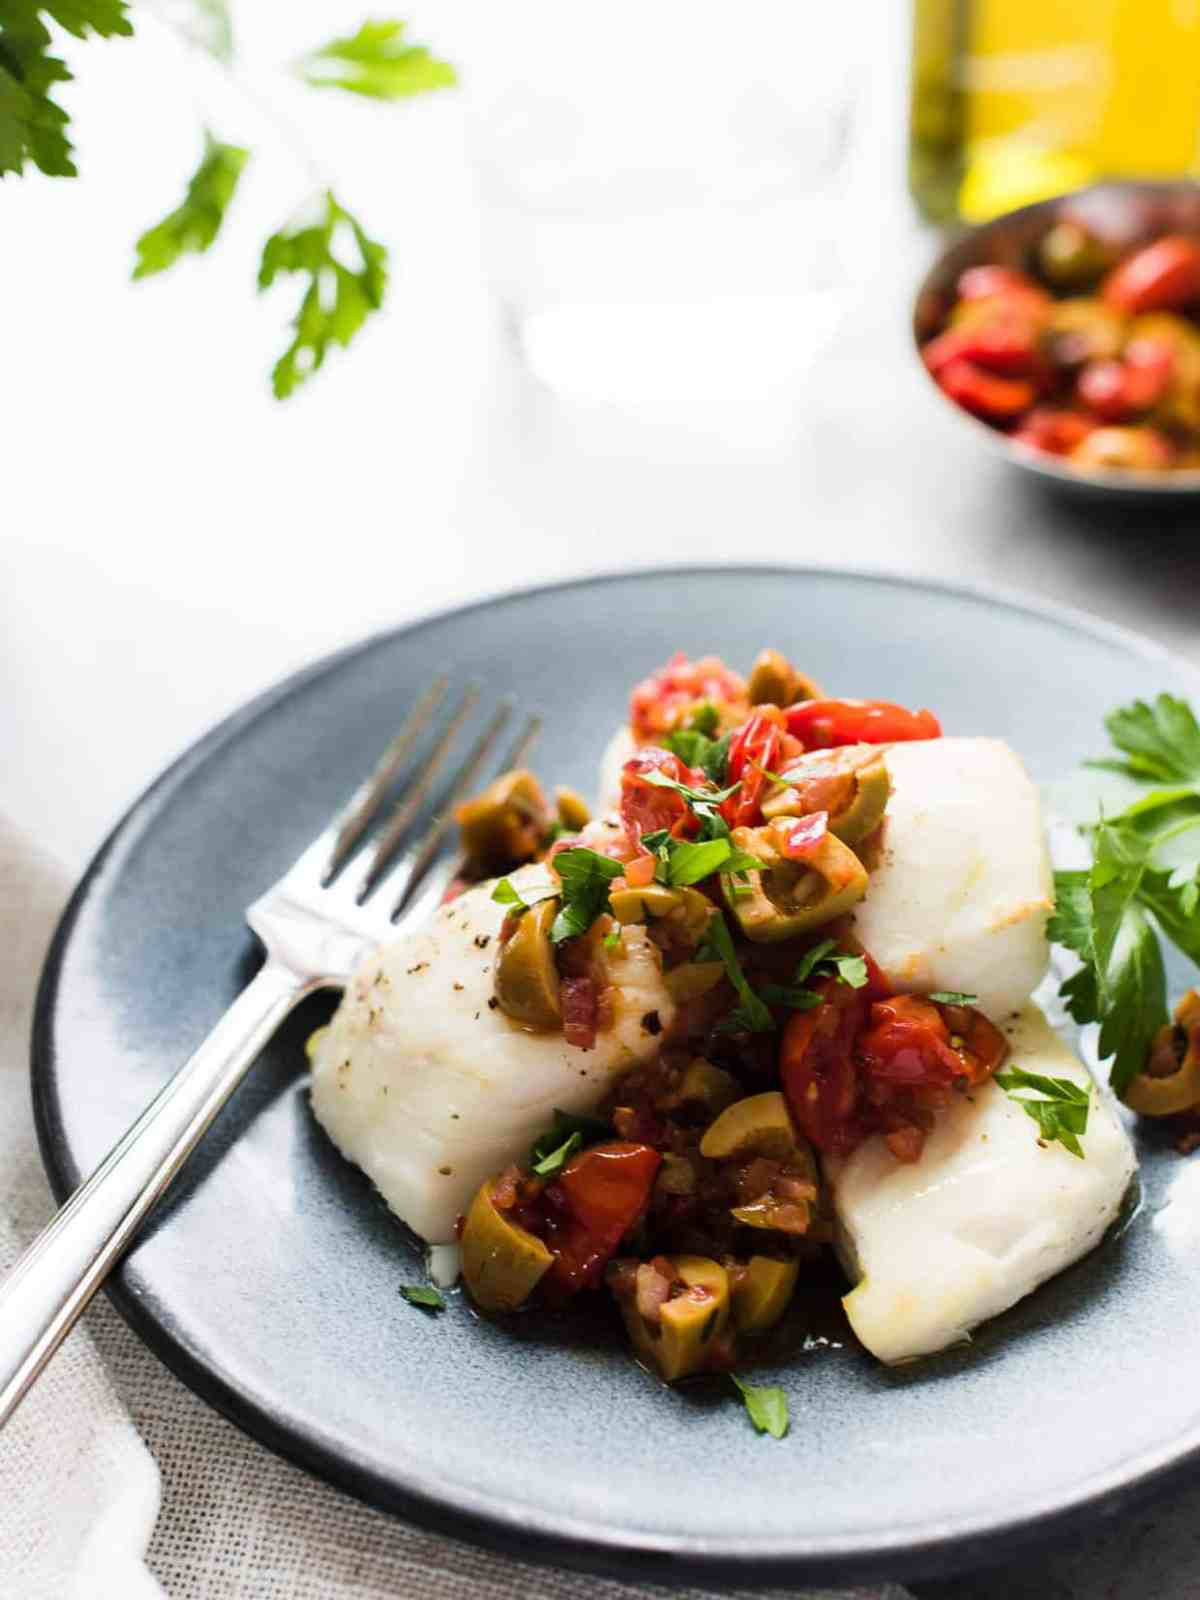 Grey plate with baked halibut topped with olives and tomatoes.